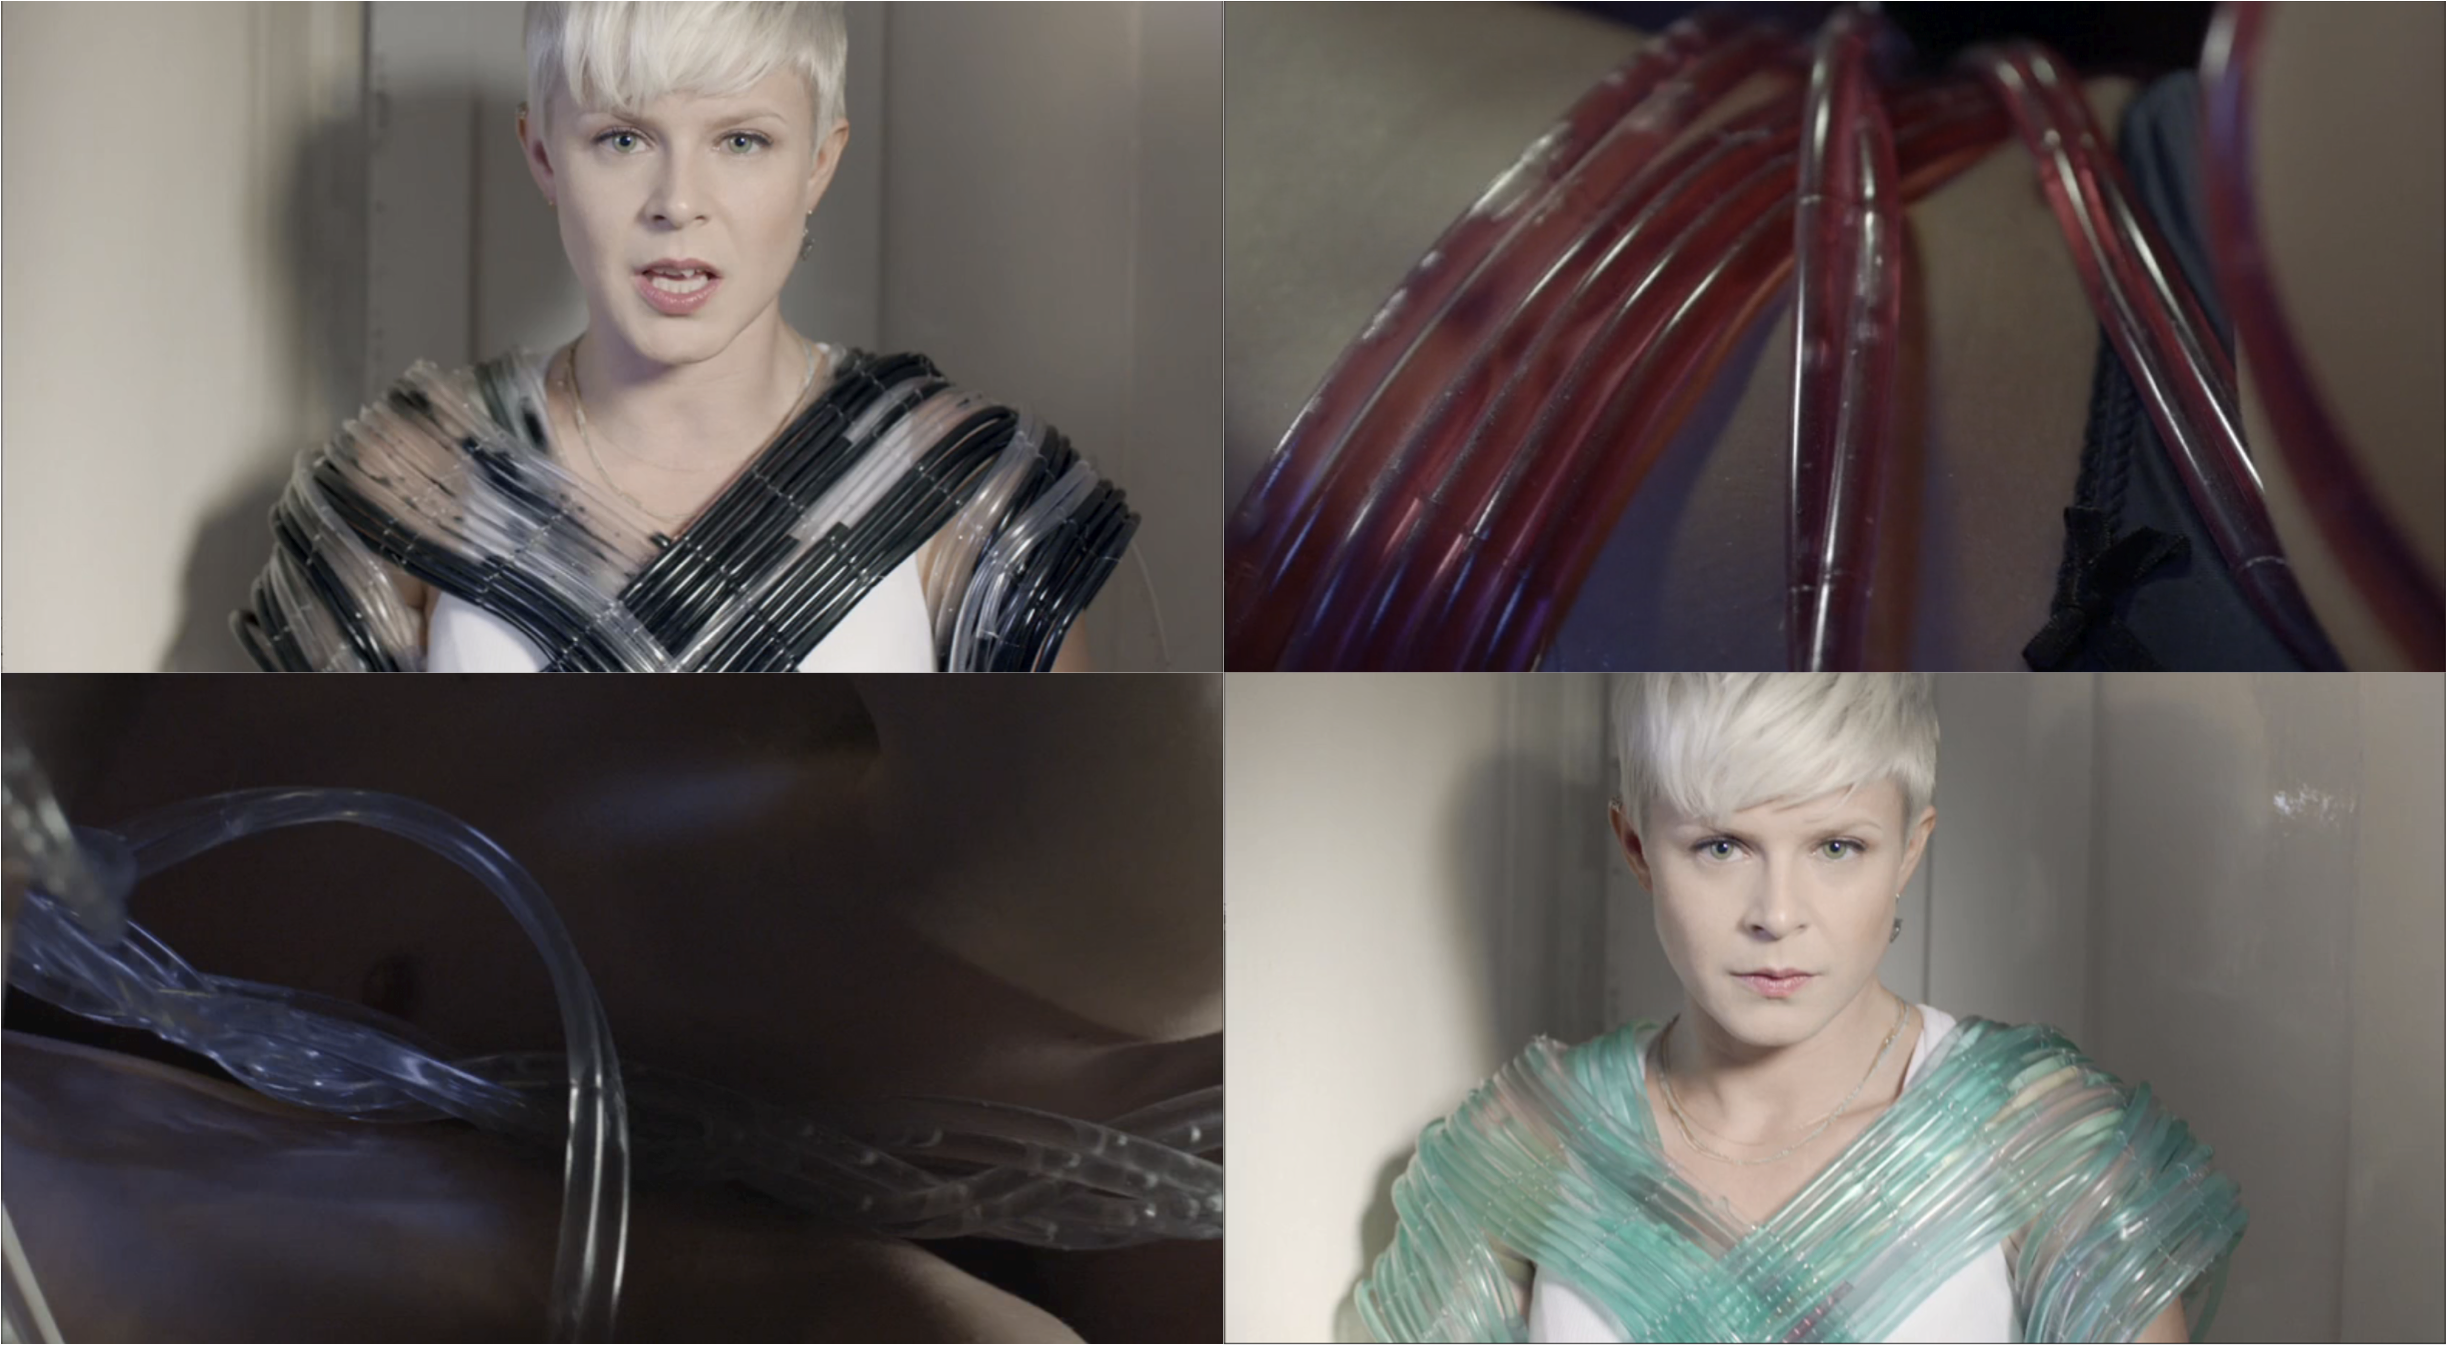 Girlfriend Robyn Cover Robyn Indestructible Music Video